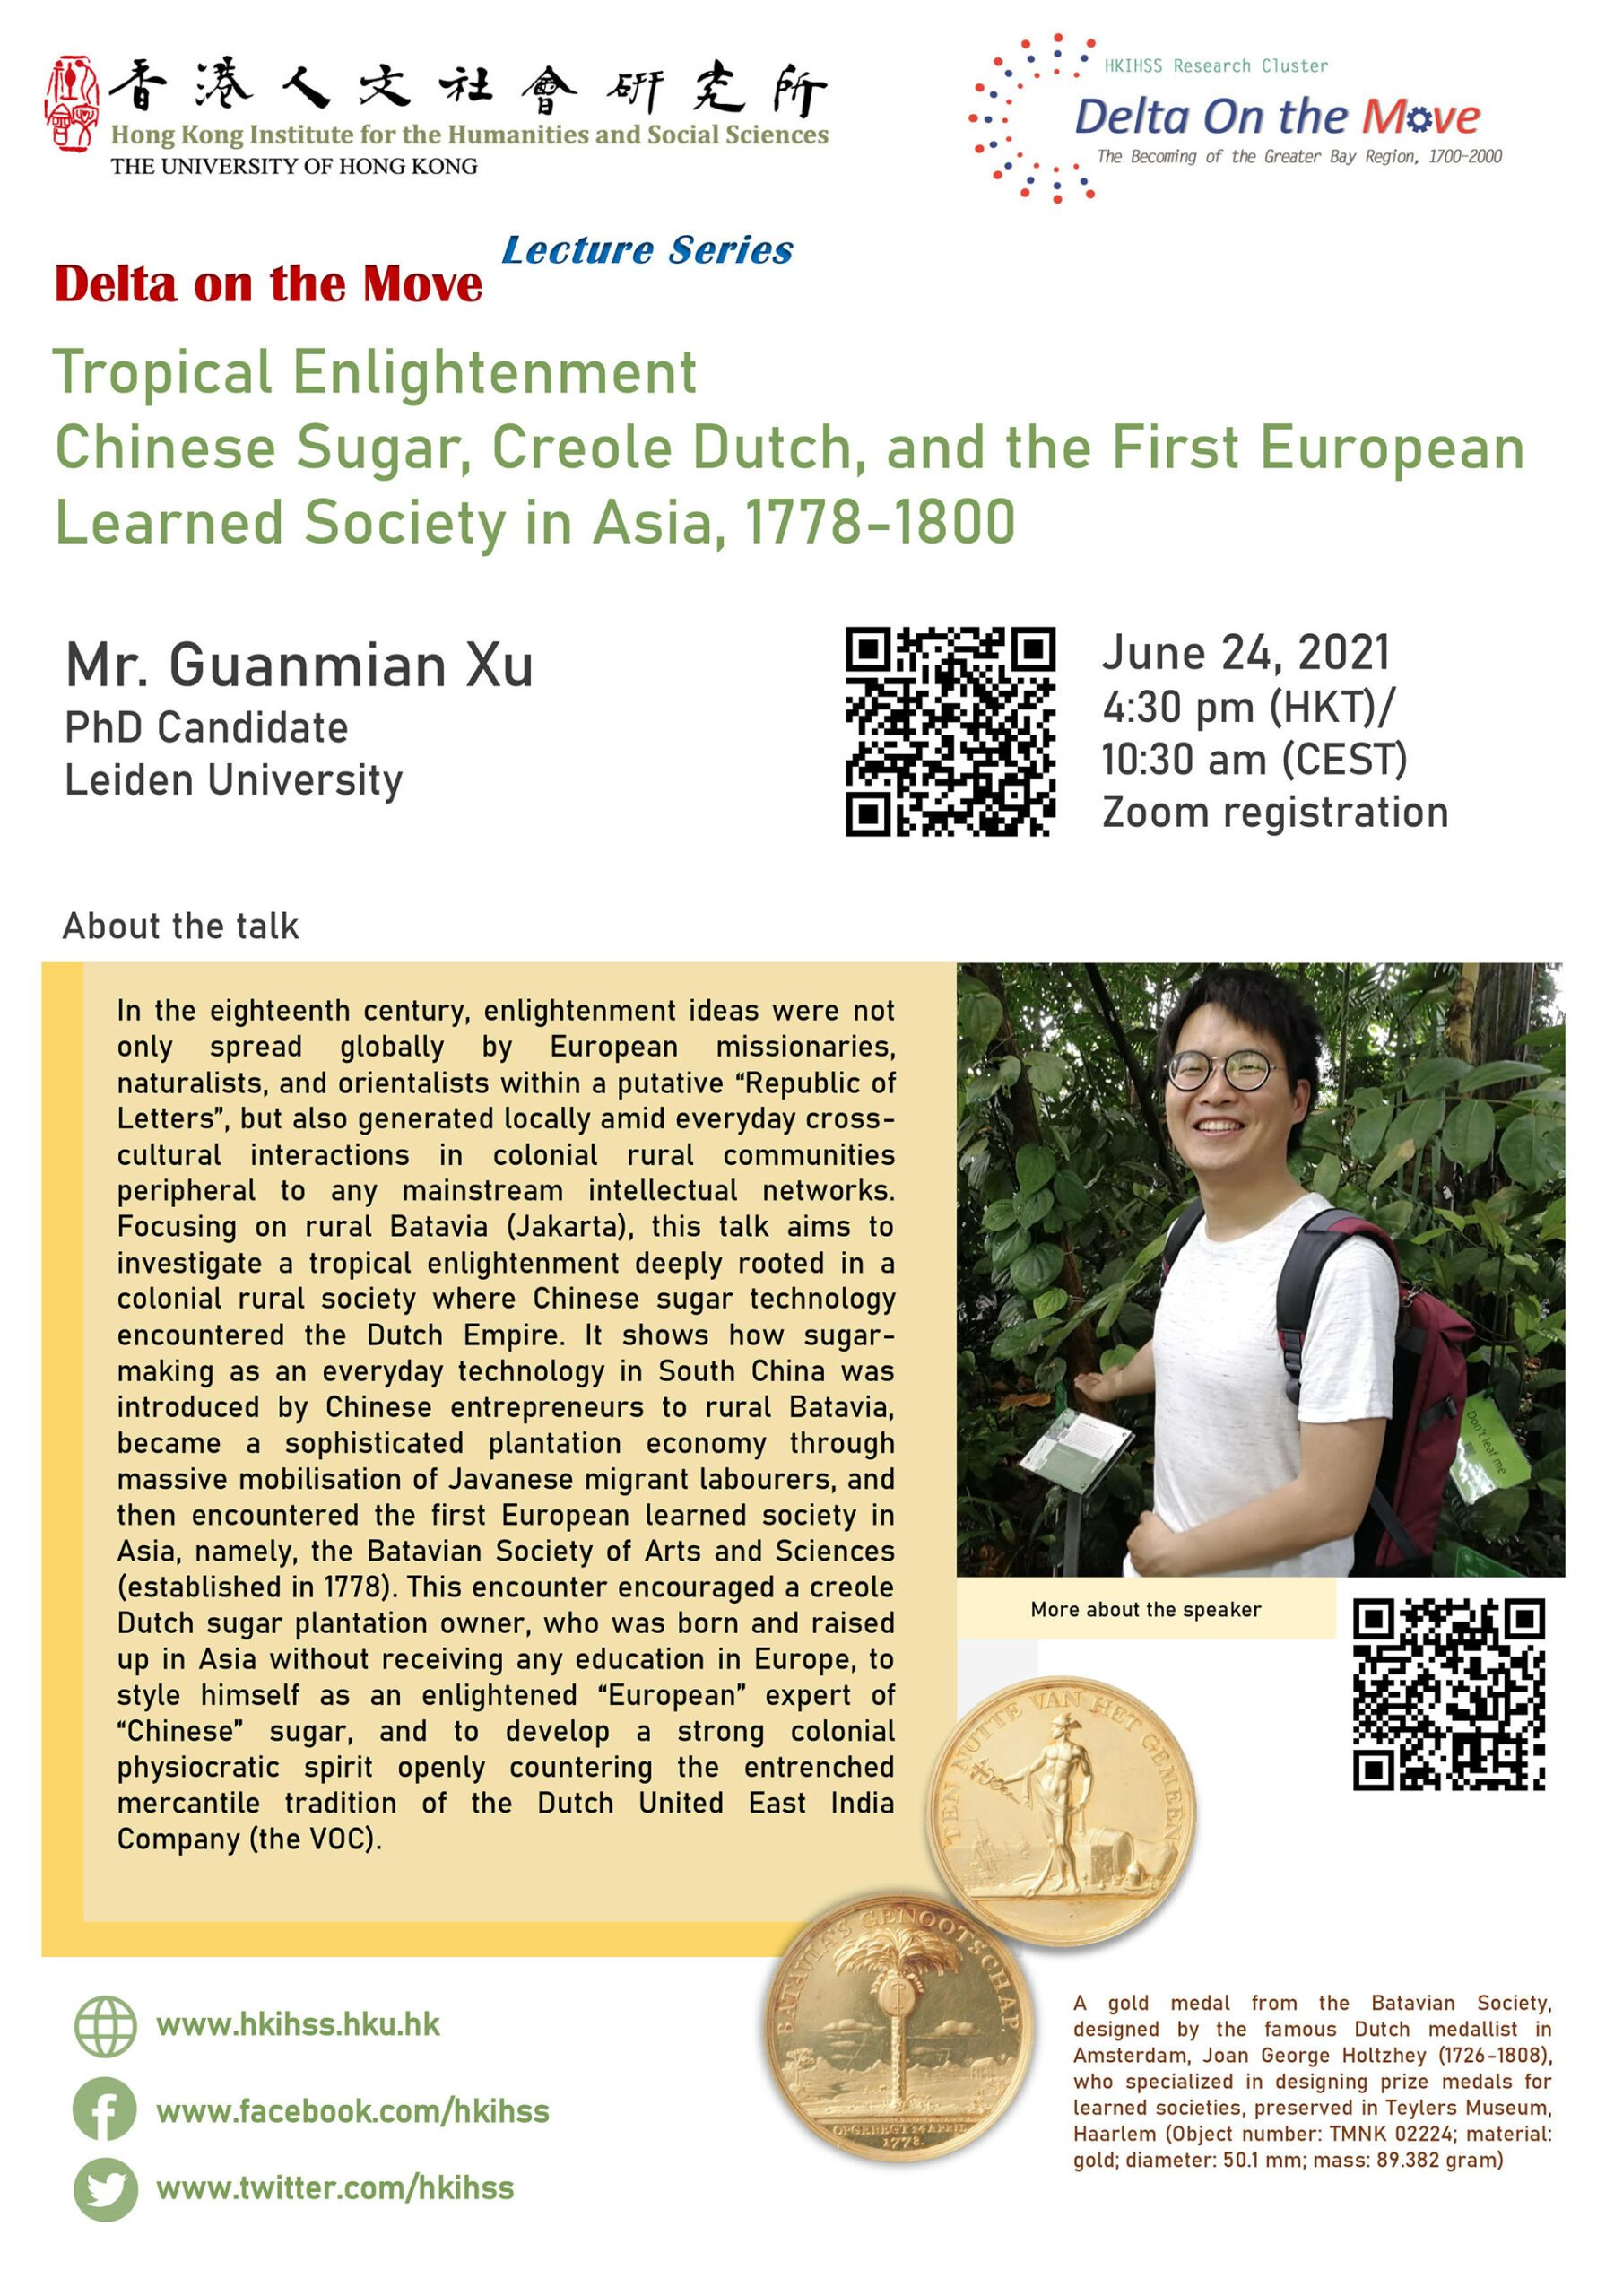 """Delta on the Move Lecture Series """"Tropical Enlightenment: Chinese Sugar, Creole Dutch, and the First European Learned Society in Asia, 1778 - 1800"""